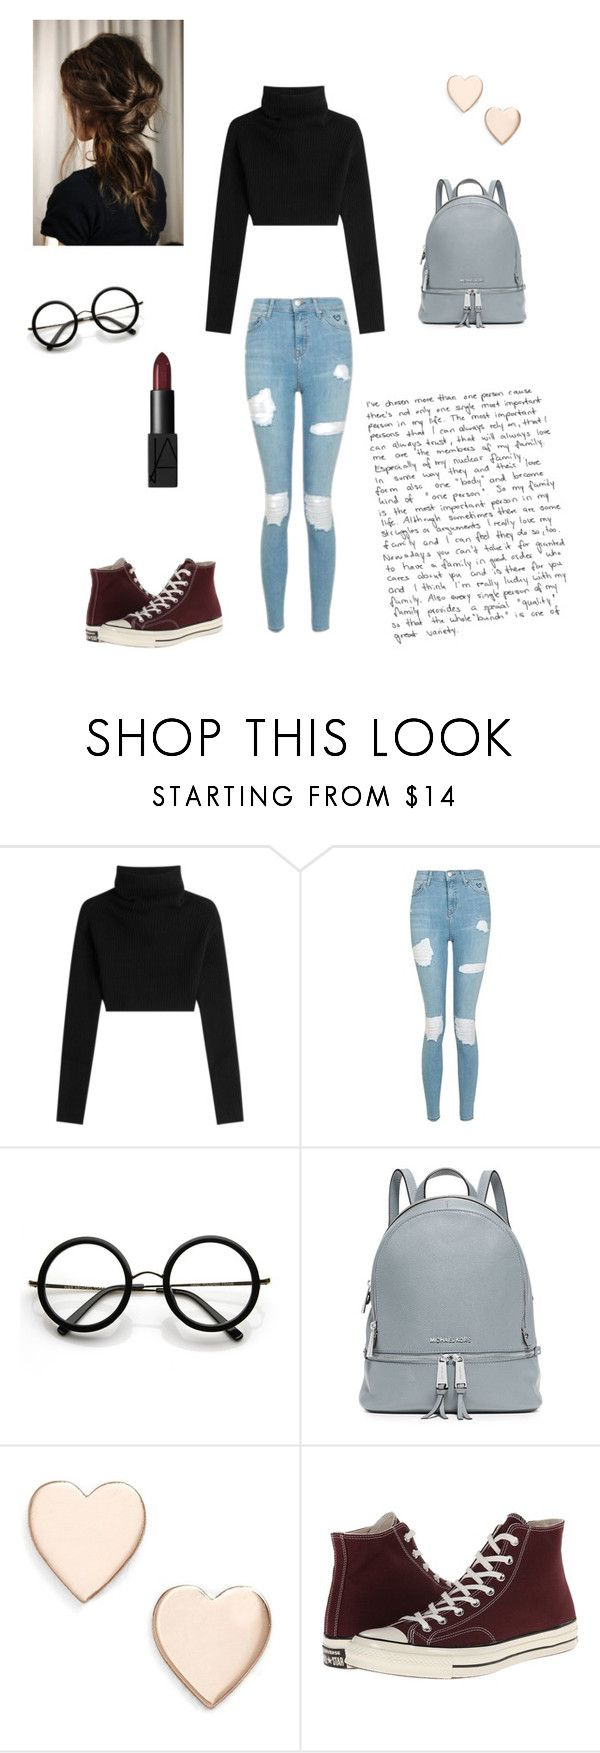 """Untitled #82"" by brianna-miller-bts-army ❤ liked on Polyvore featuring Valentino, Topshop, ZeroUV, MICHAEL Michael Kors, Poppy Finch, Converse and NARS Cosmetics"